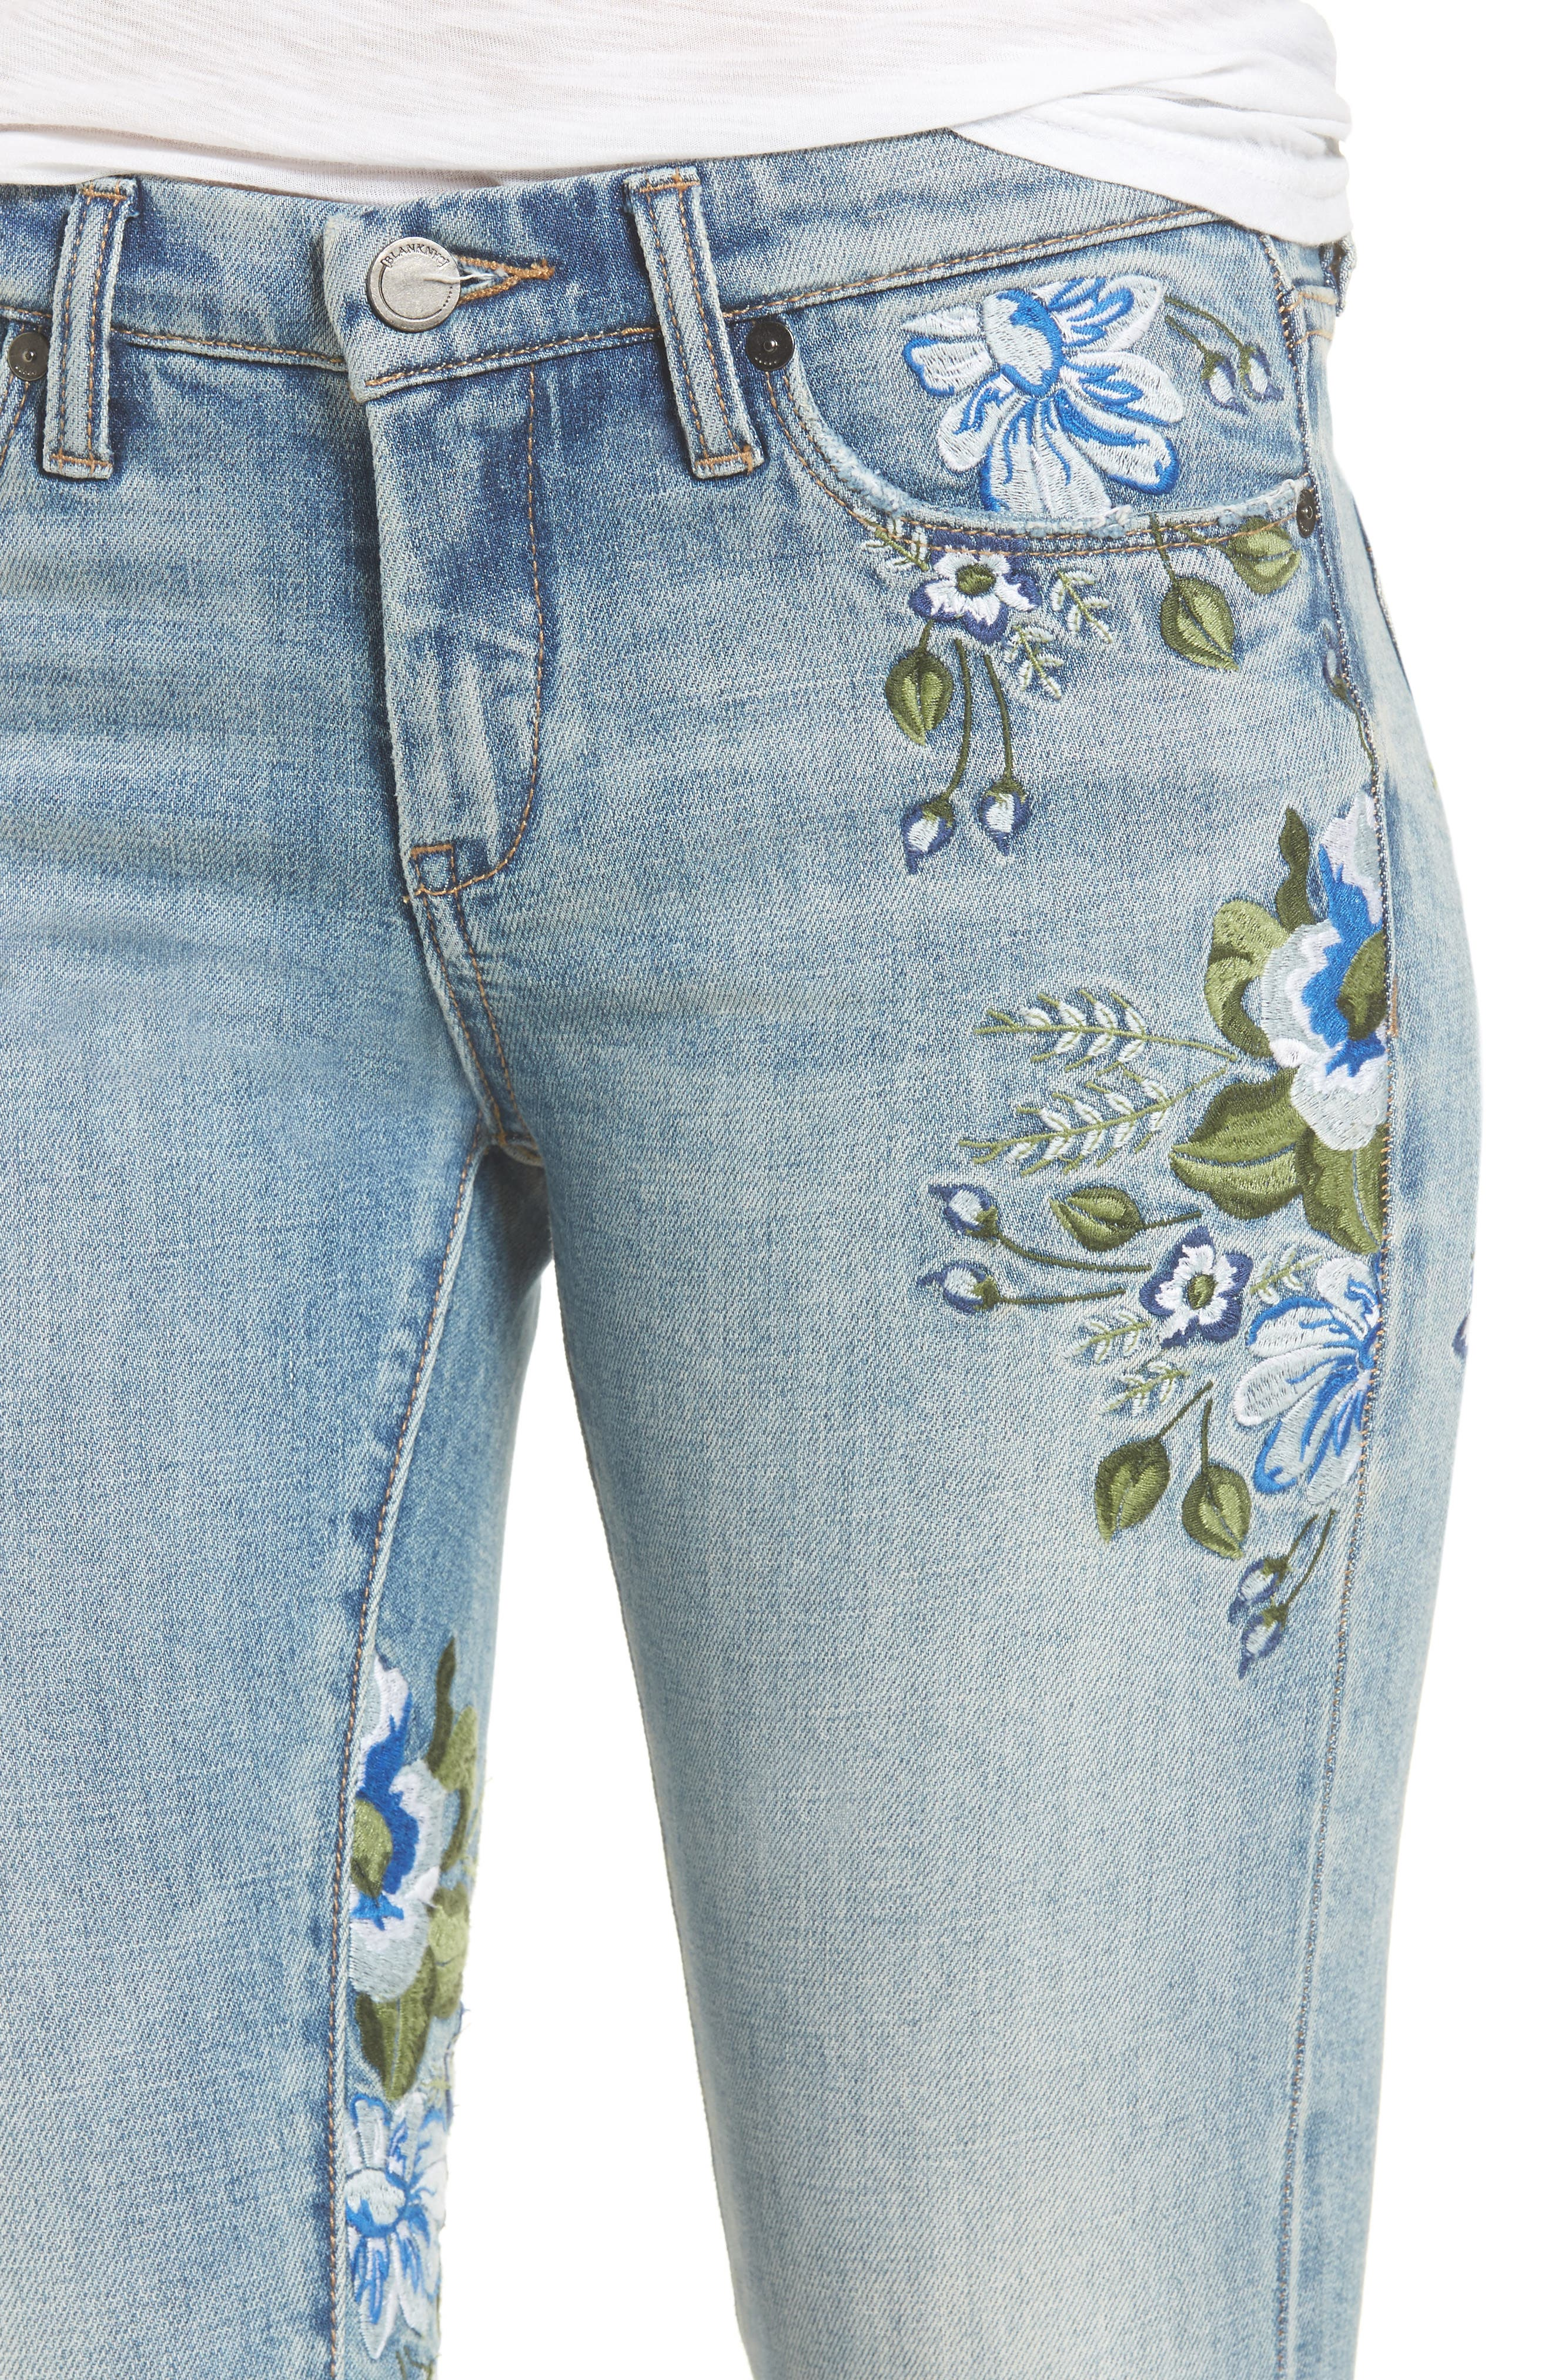 Alternate Image 4  - BLANKNYC Floral Embroidered Skinny Jeans (Back to Nature)